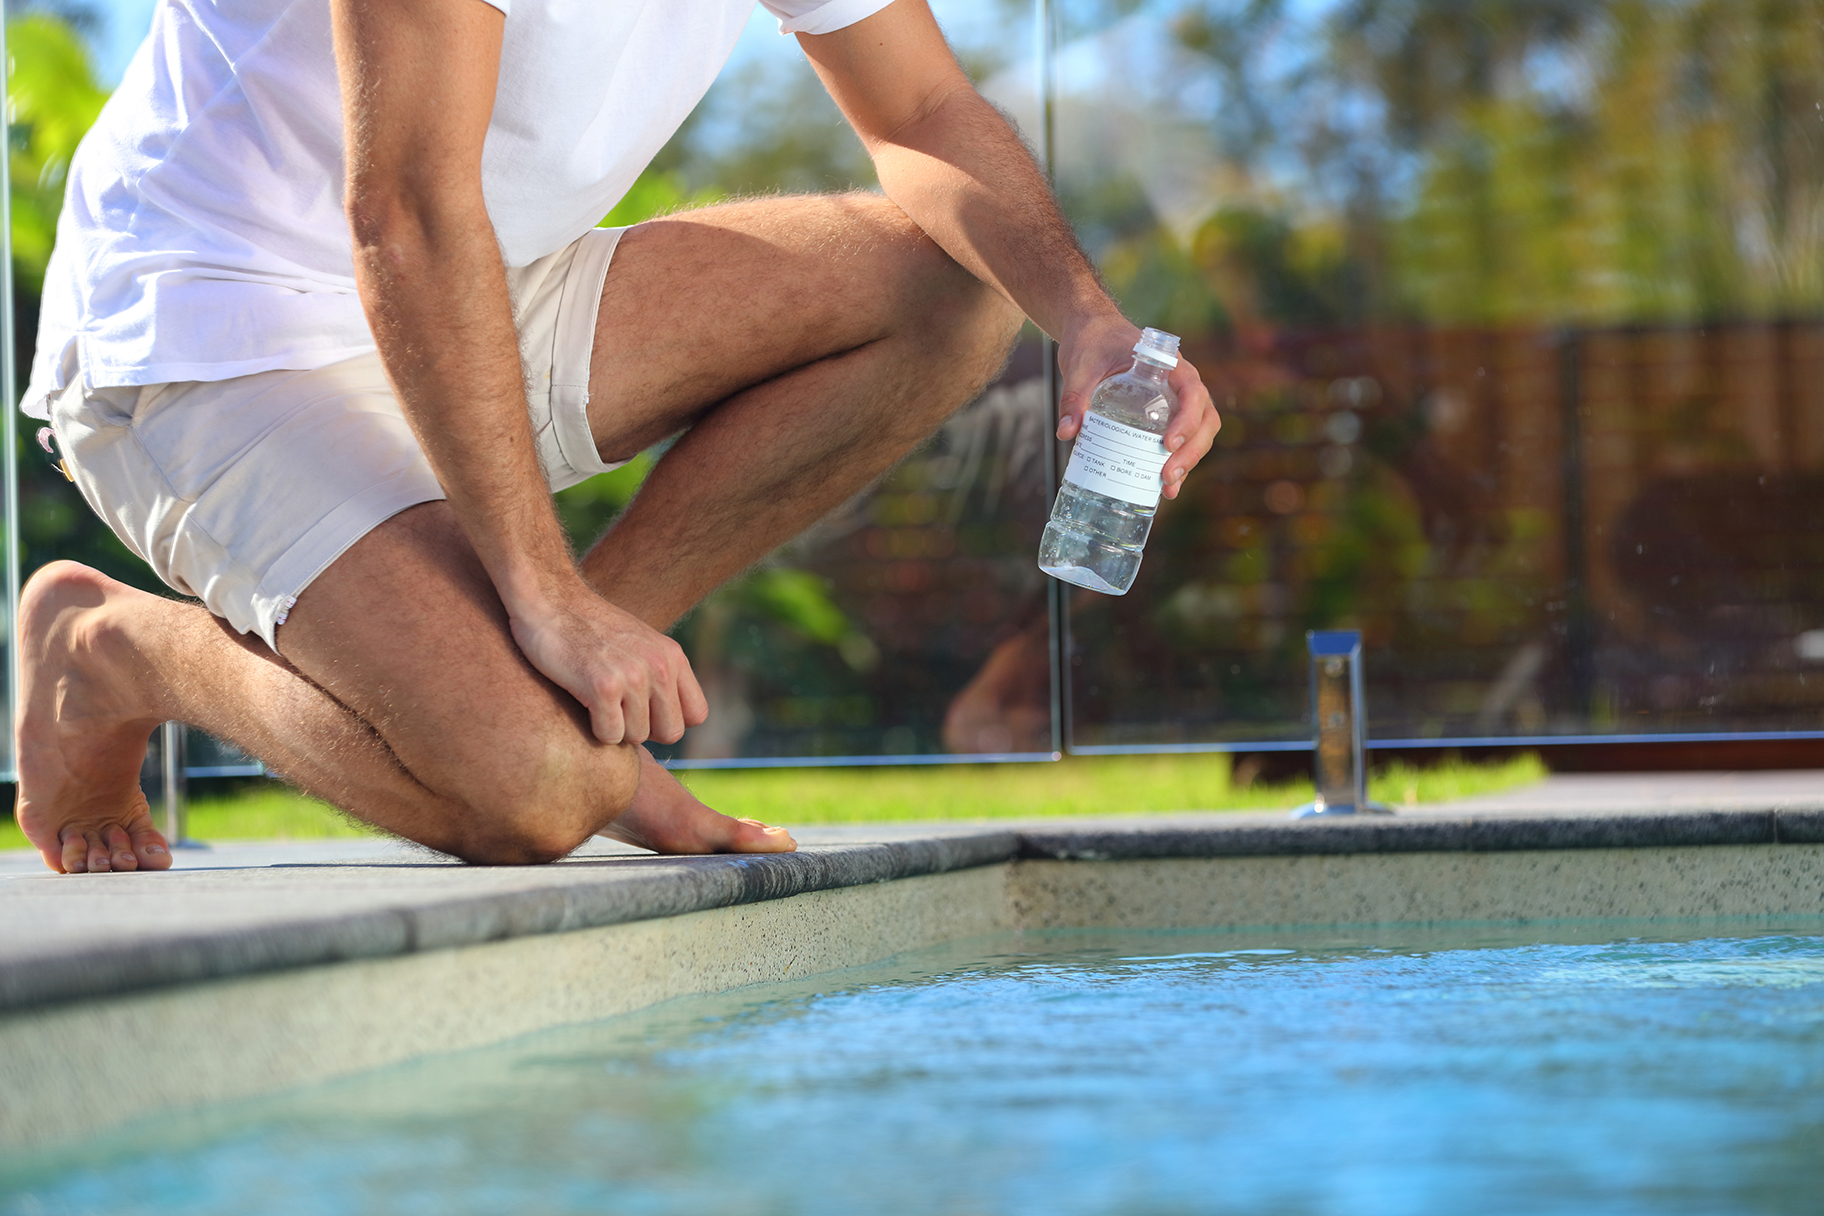 Man filling water testing bottle with water from swimming pool